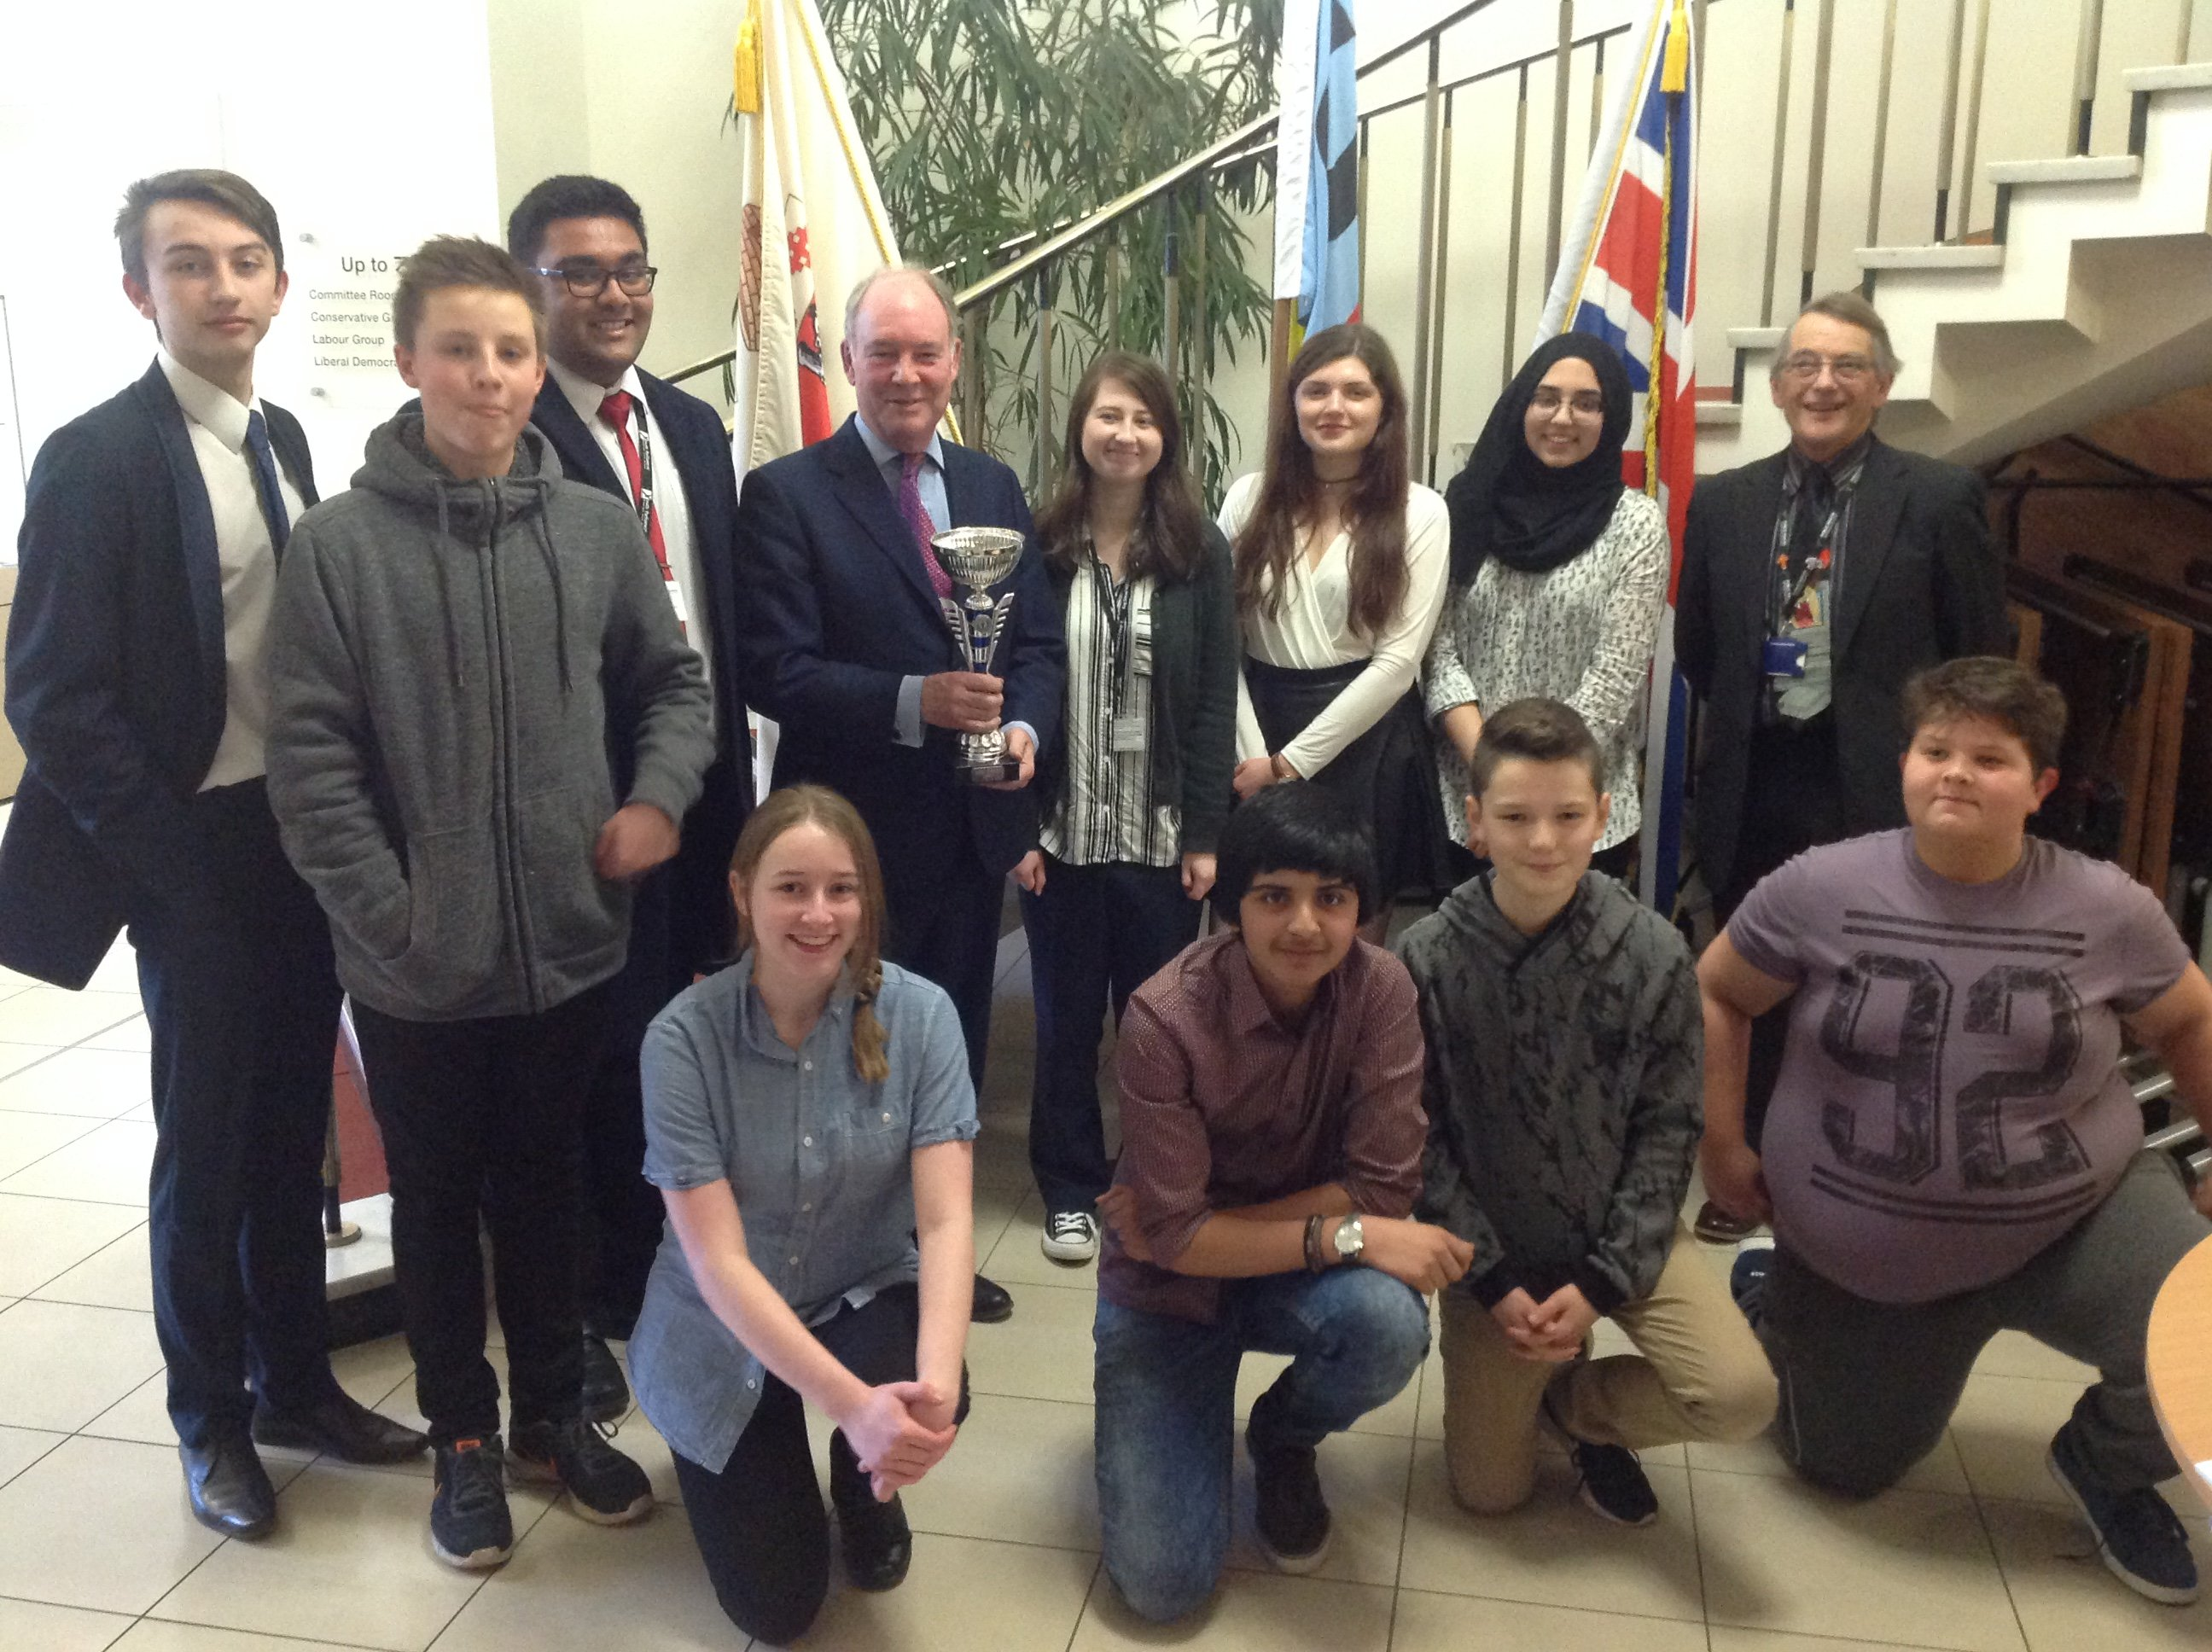 Philip Seccombe with Councillor Les Caborn and members of the Warwickshire Youth Parliament at the One Voice event